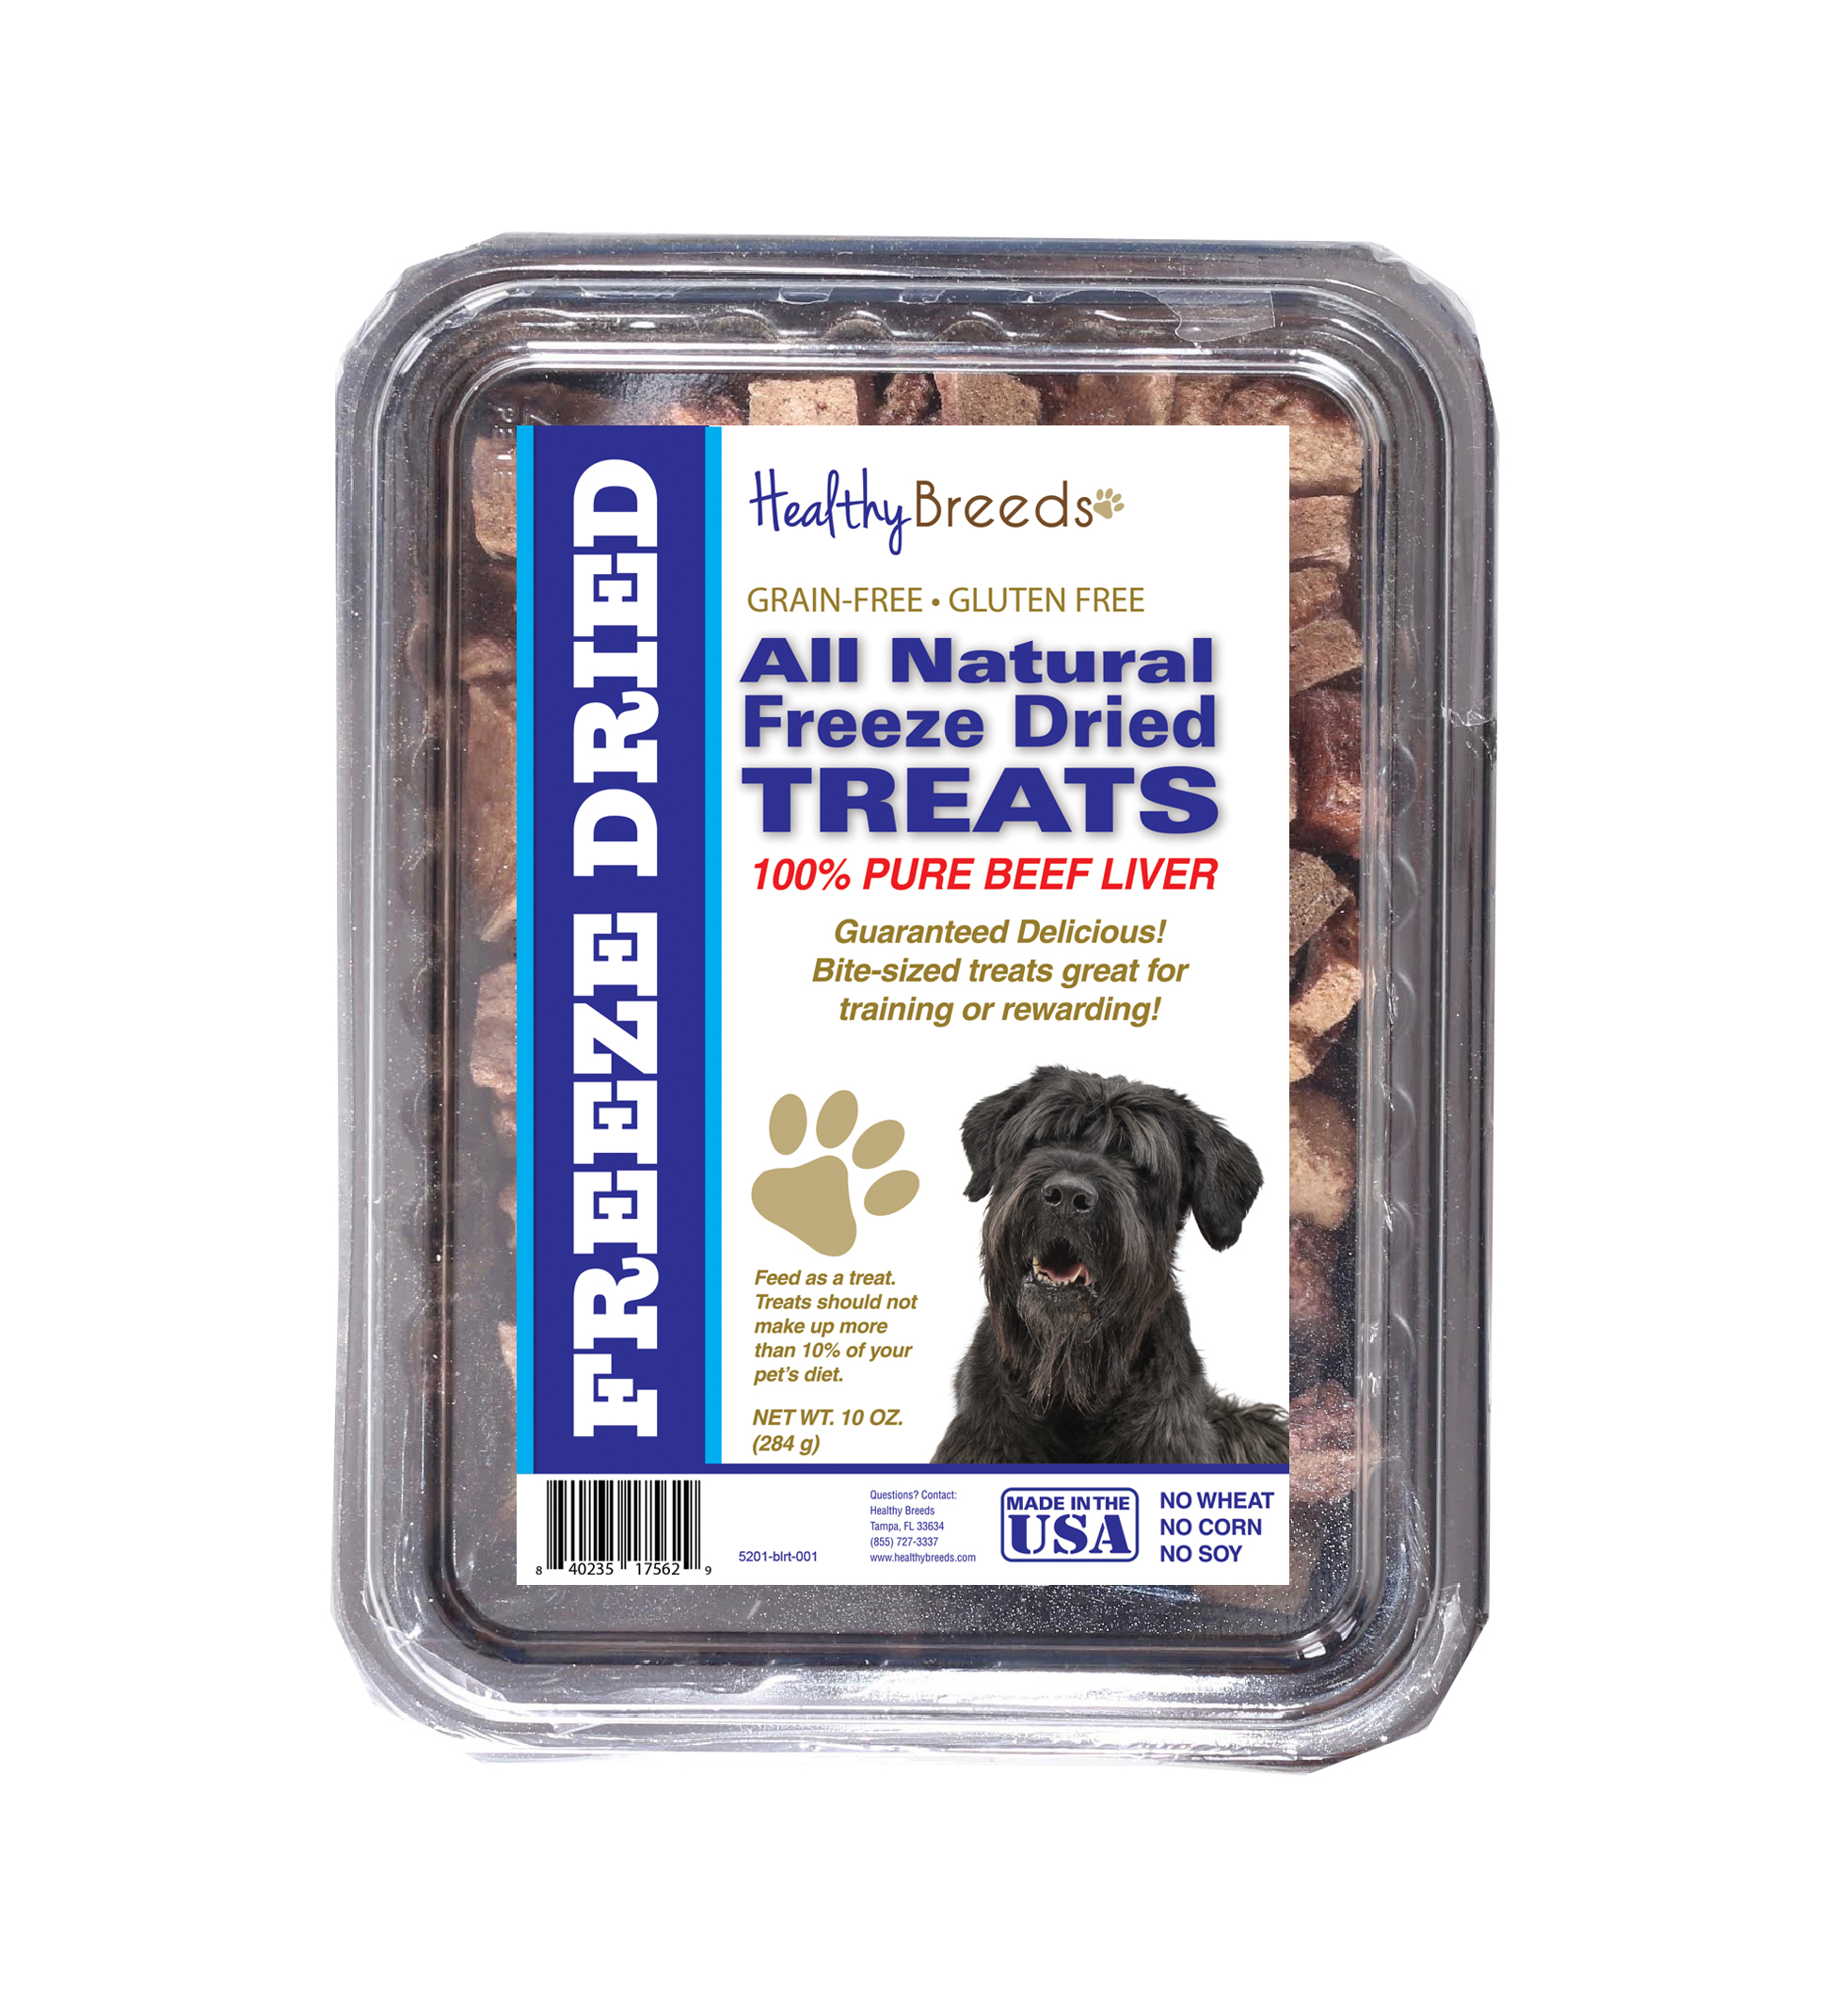 Healthy Breeds Black Russian Terrier All Natural Freeze Dried Treats Beef Liver 10 oz